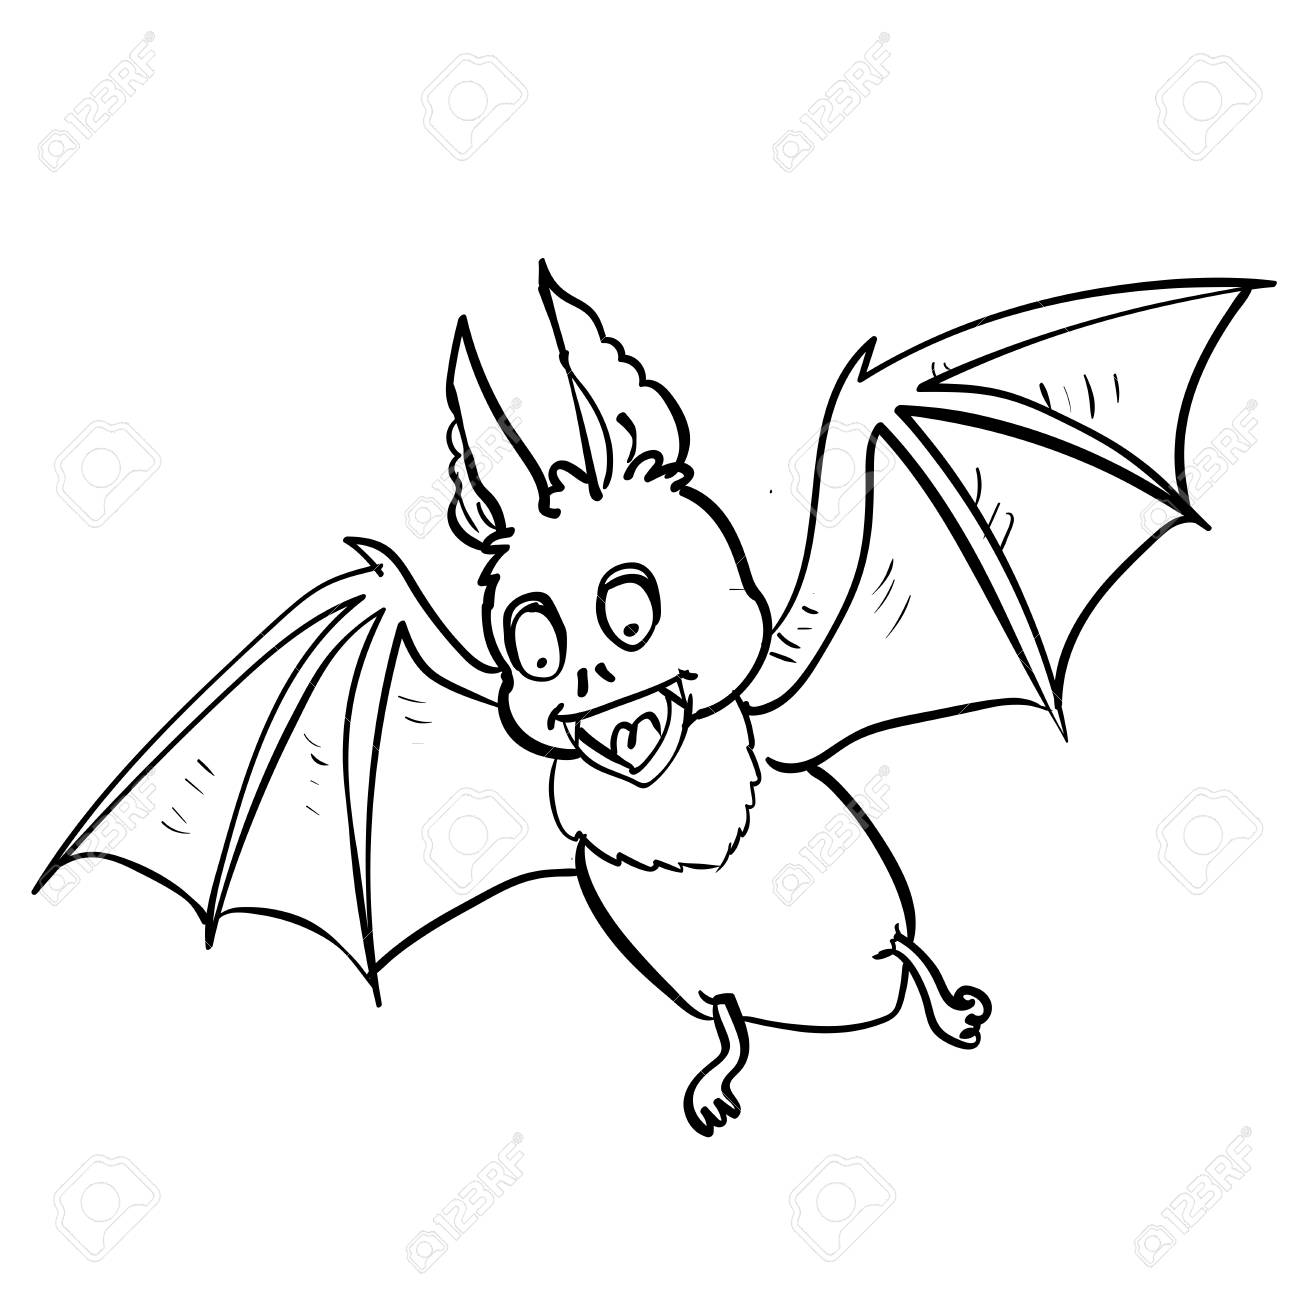 1300x1300 Hand Drawing Halloween Bat Cartoon, Vampire Evil, Isolated